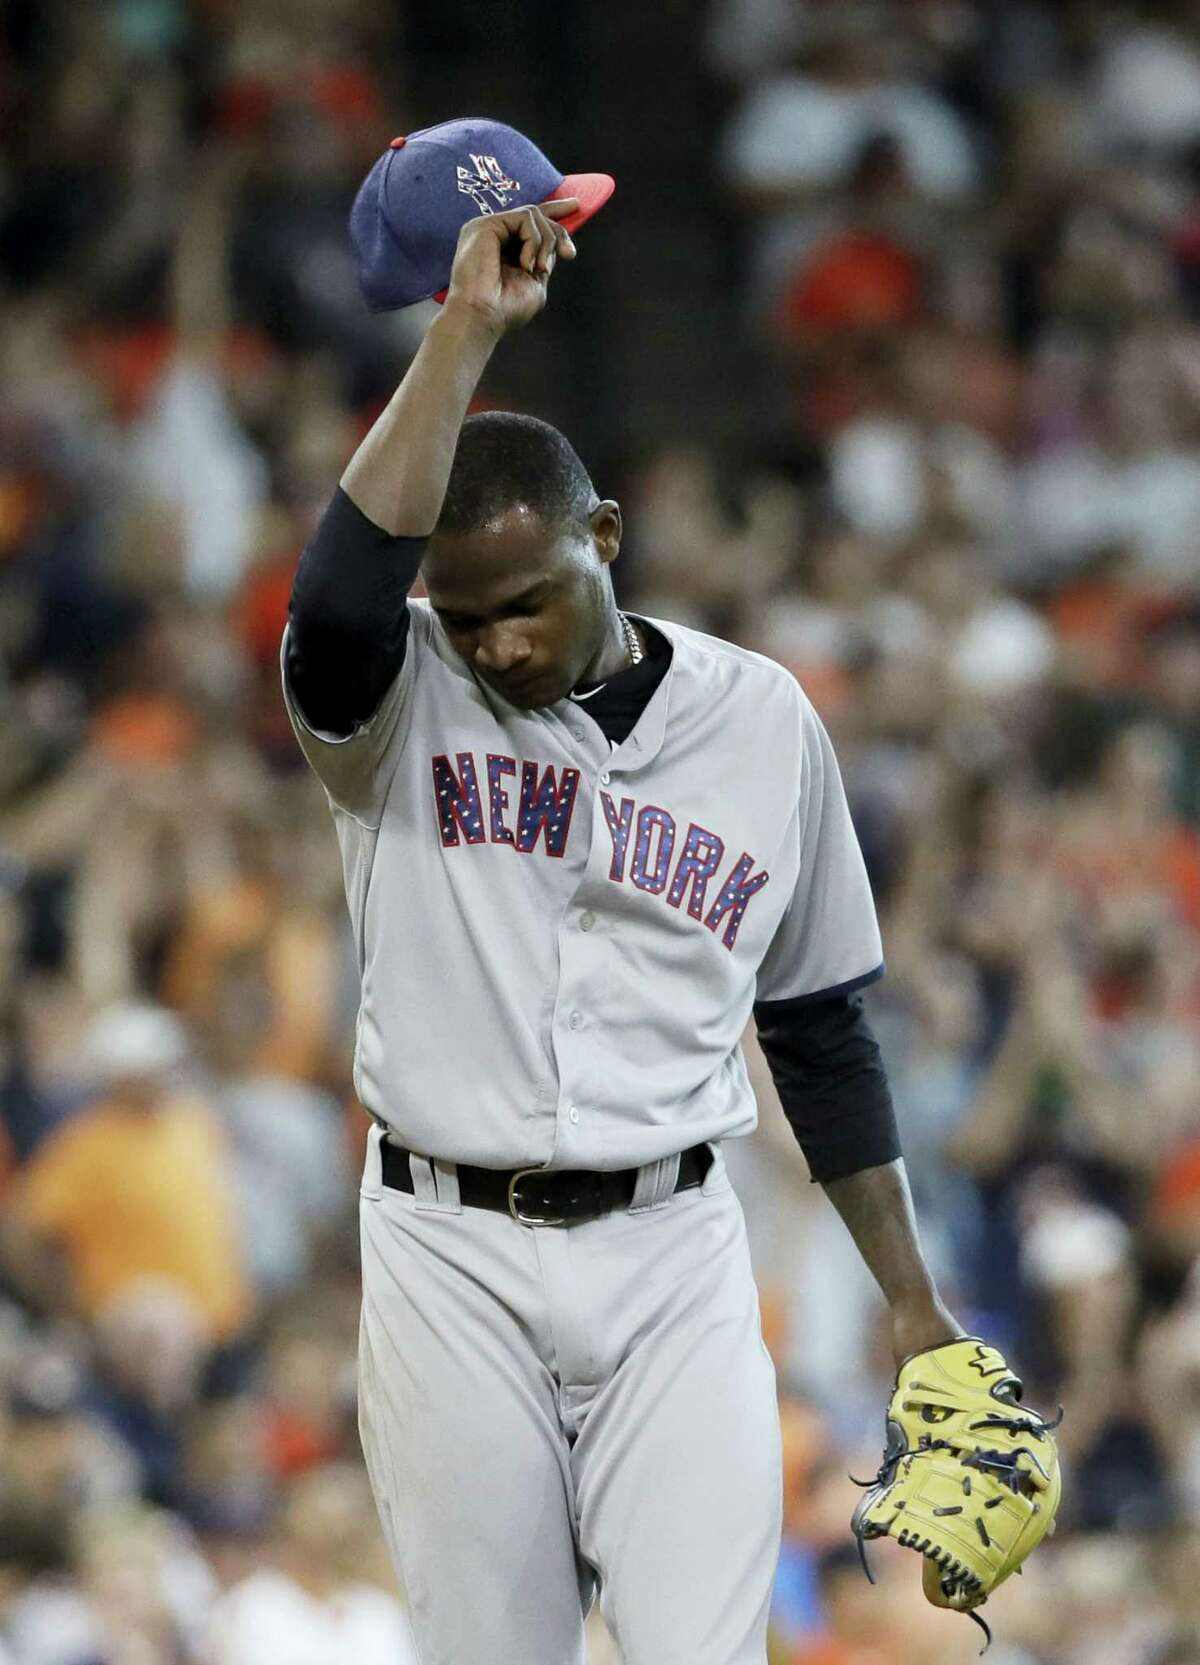 Yankees pitcher Domingo German wipes his head after giving up a two-run home run to Yuli Gurriel during the seventh inning on Sunday.